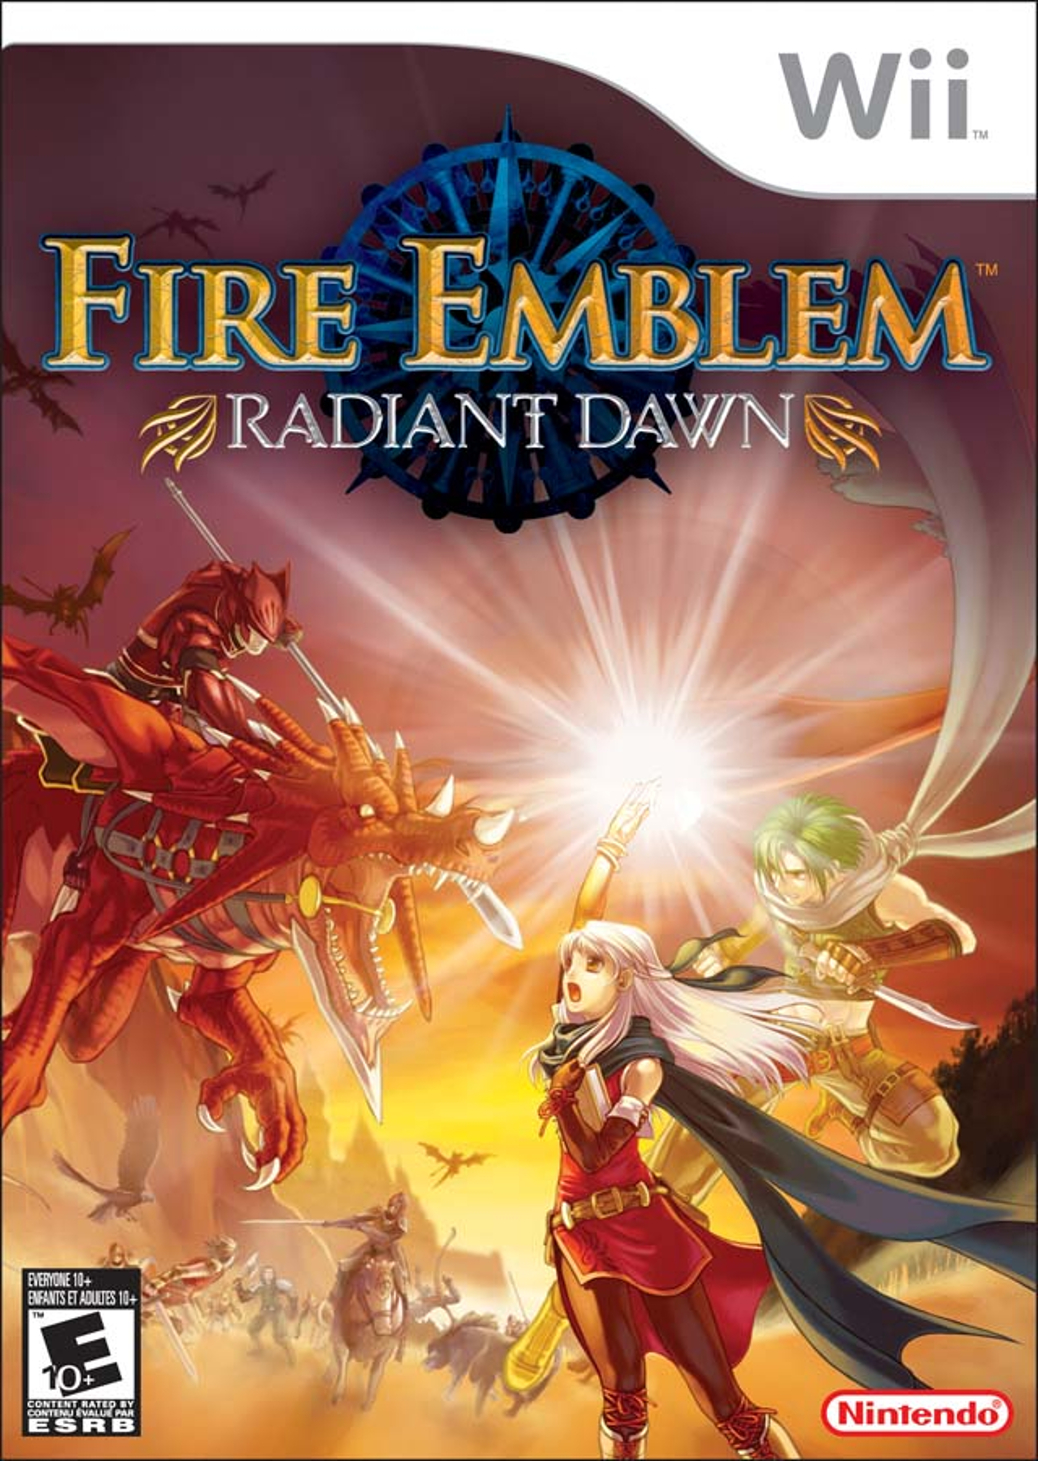 Fire Emblem Radiant Dawn - Wii - North American Box Art